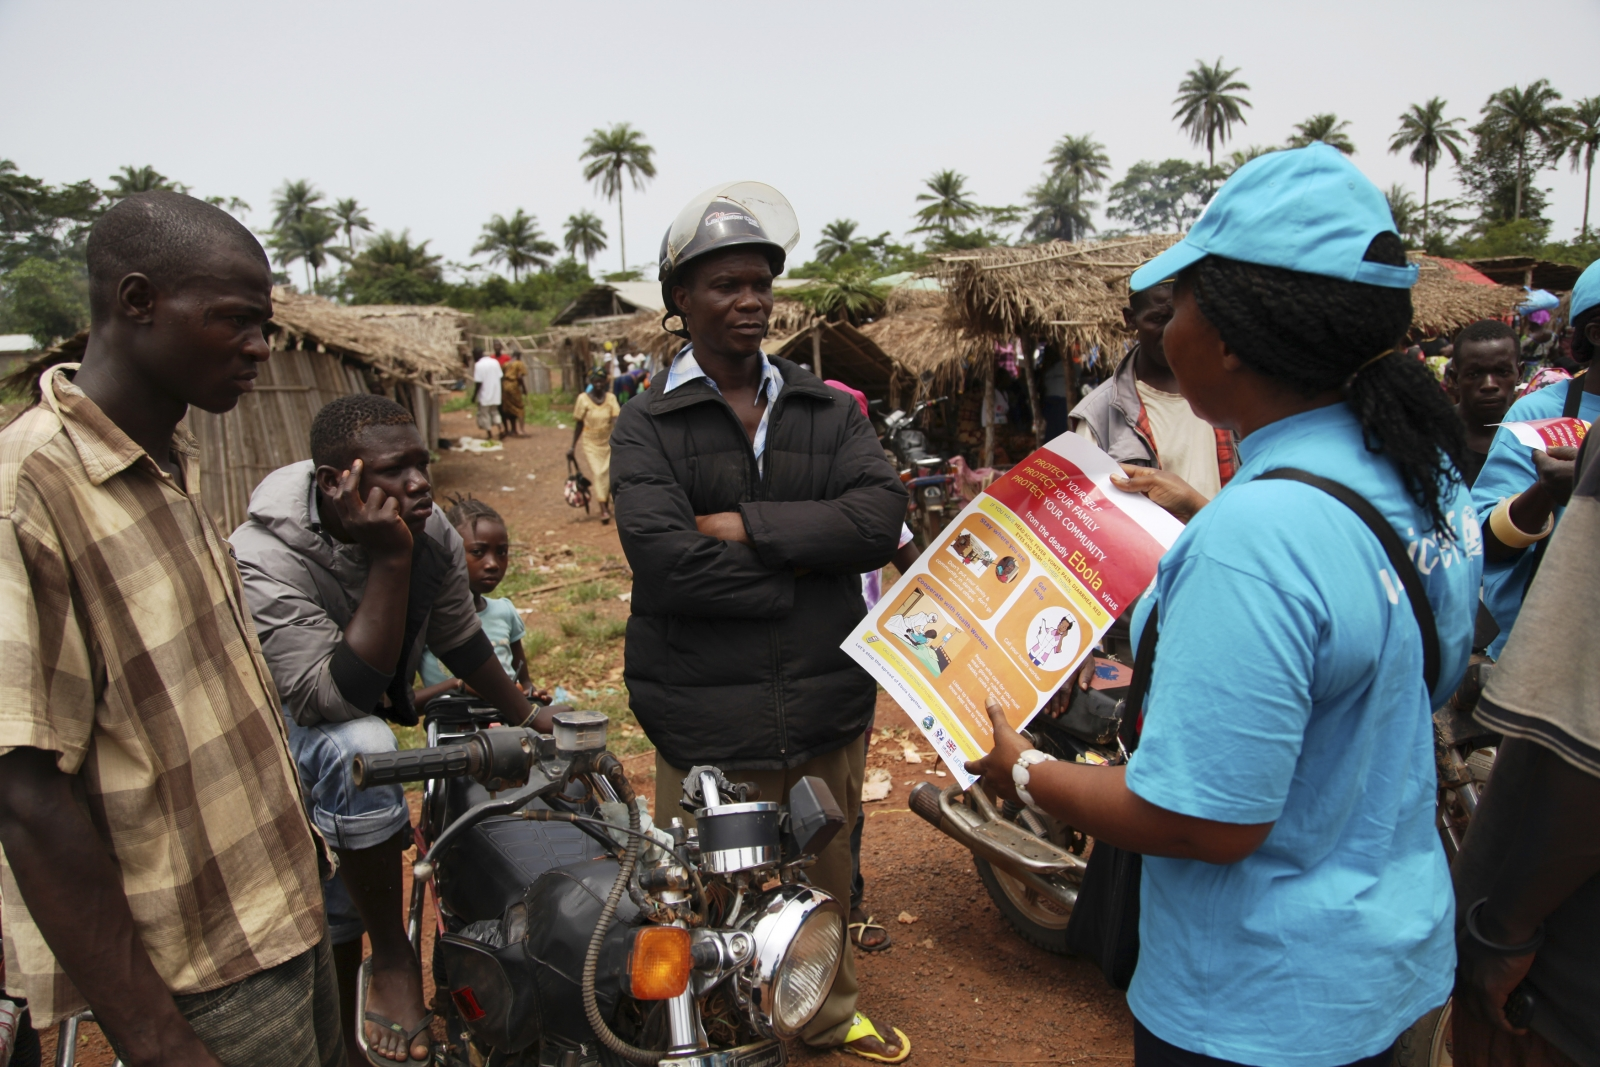 Ebola Outbreak: Armed Liberians 'Poison' Wells Killing Villagers under Pretext of Epidemic